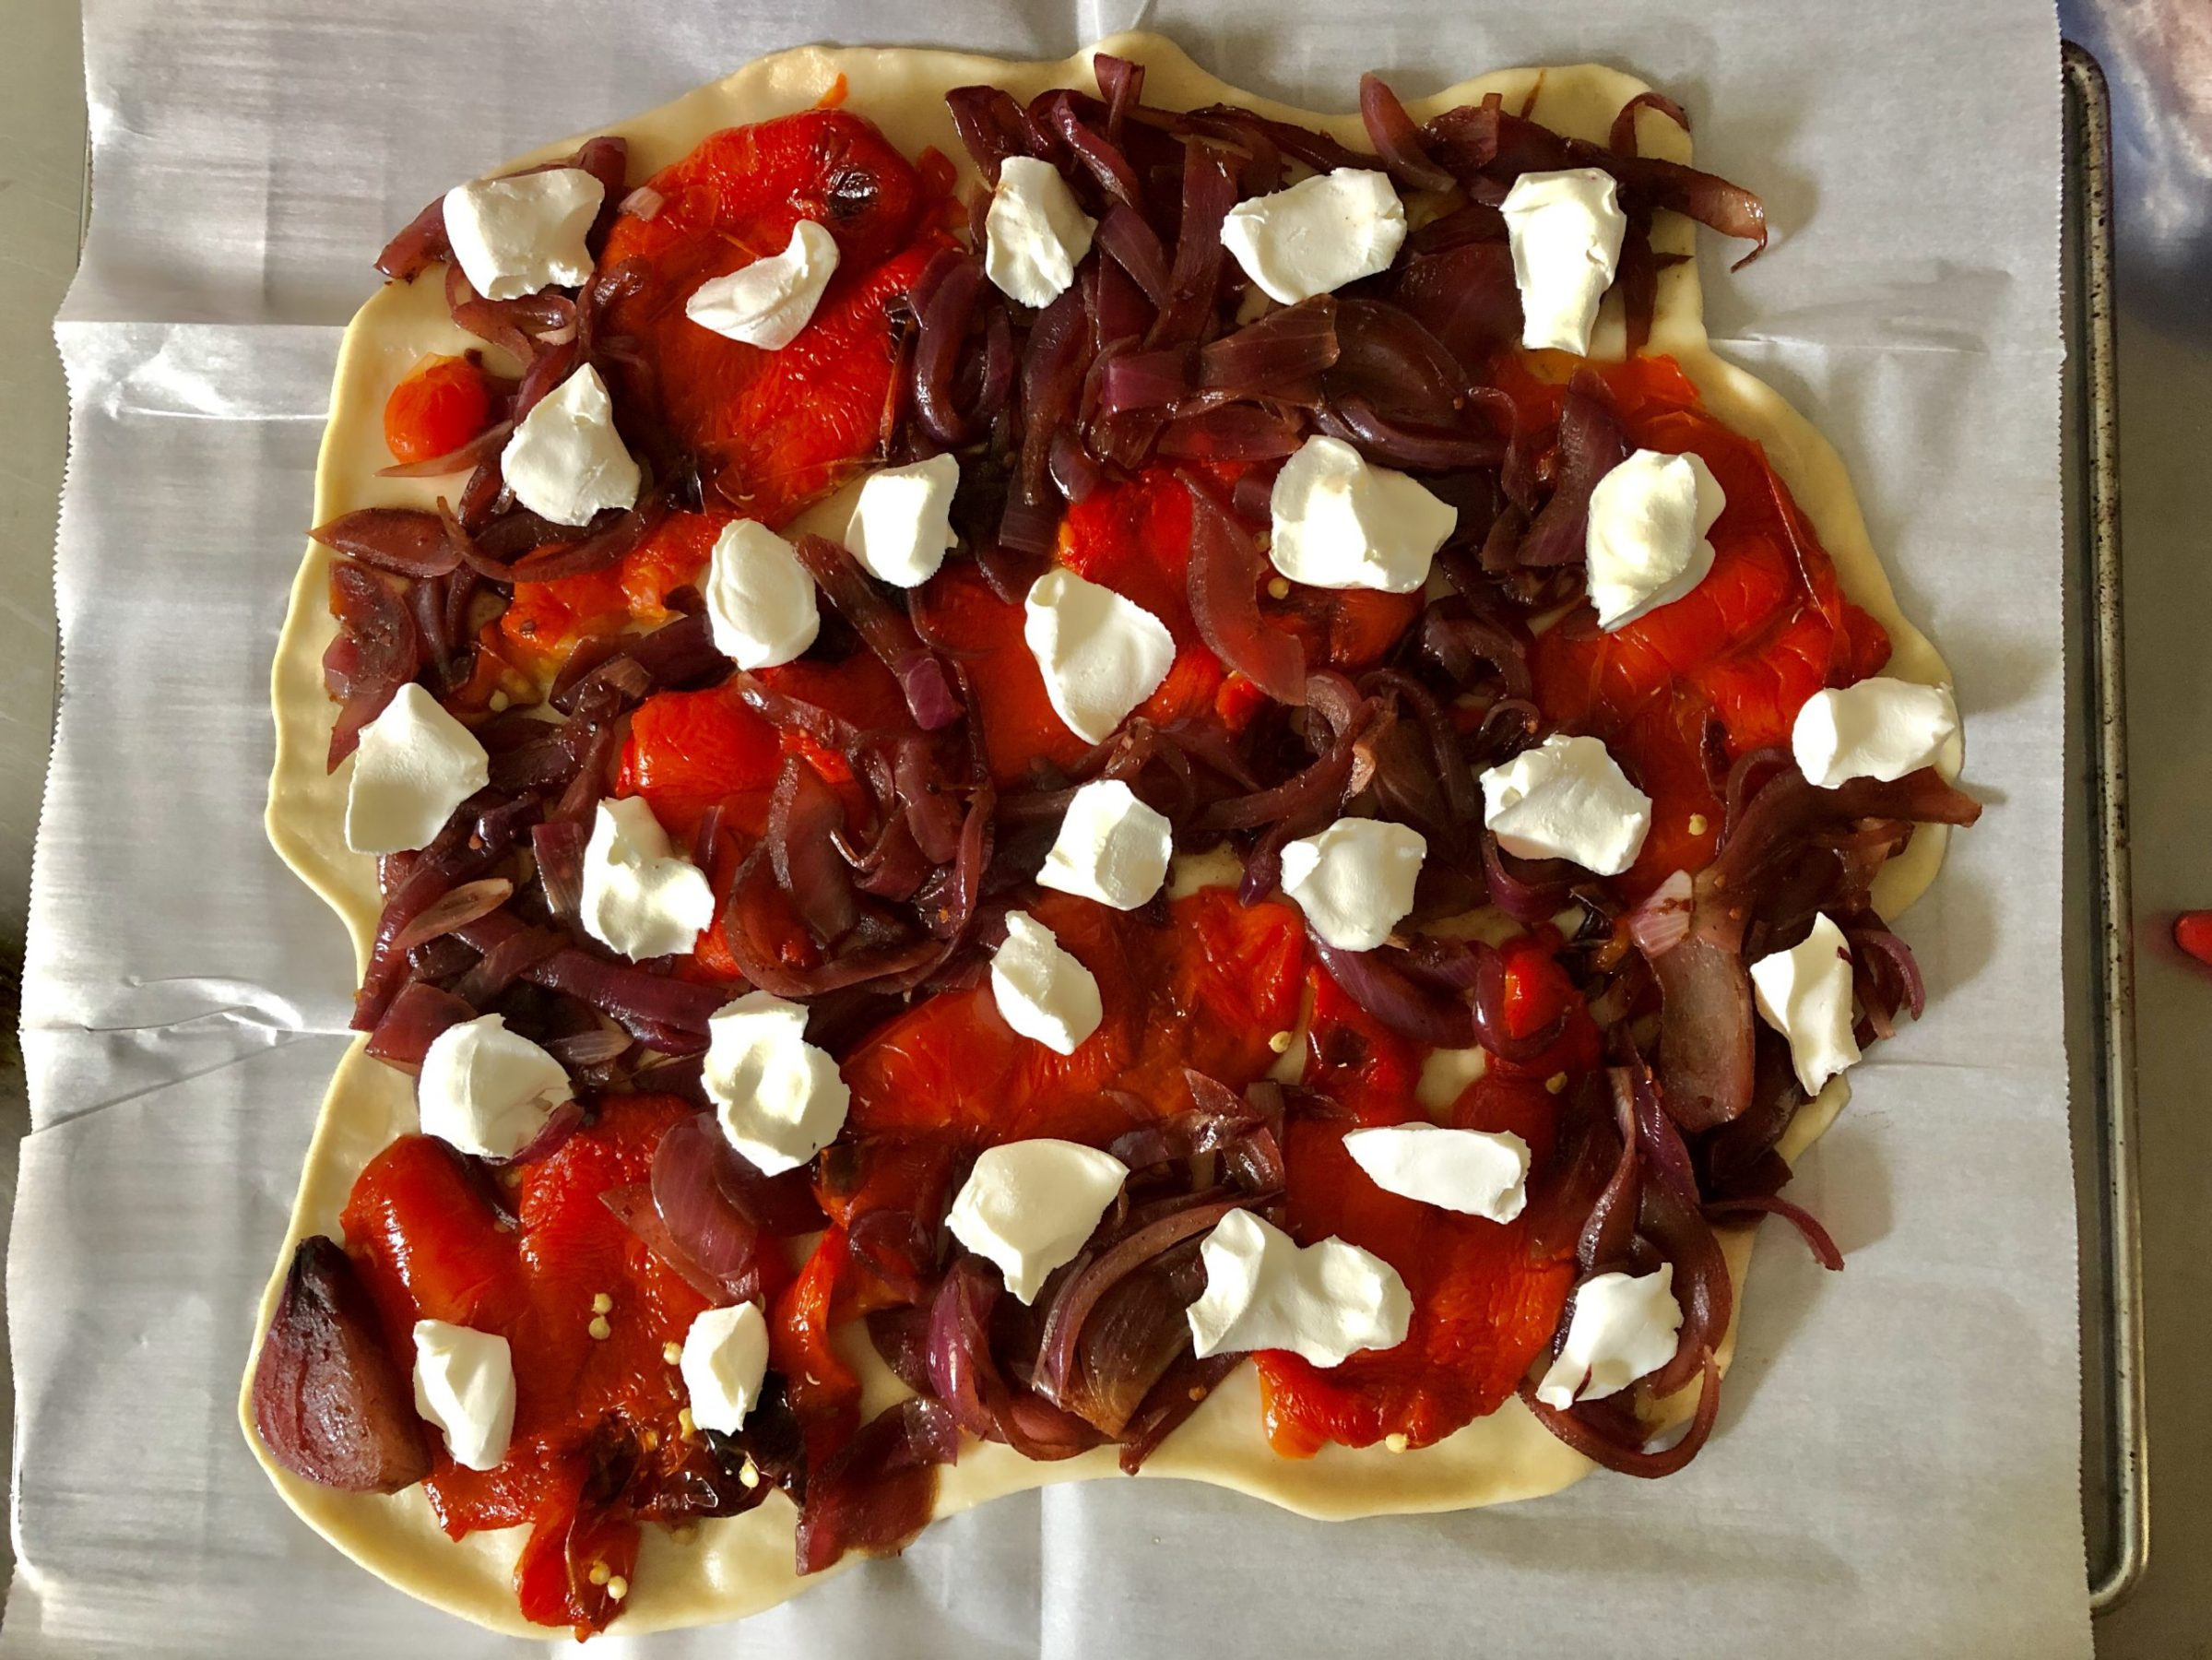 Galette with roasted red peppers, caramelized onions and goat cheese